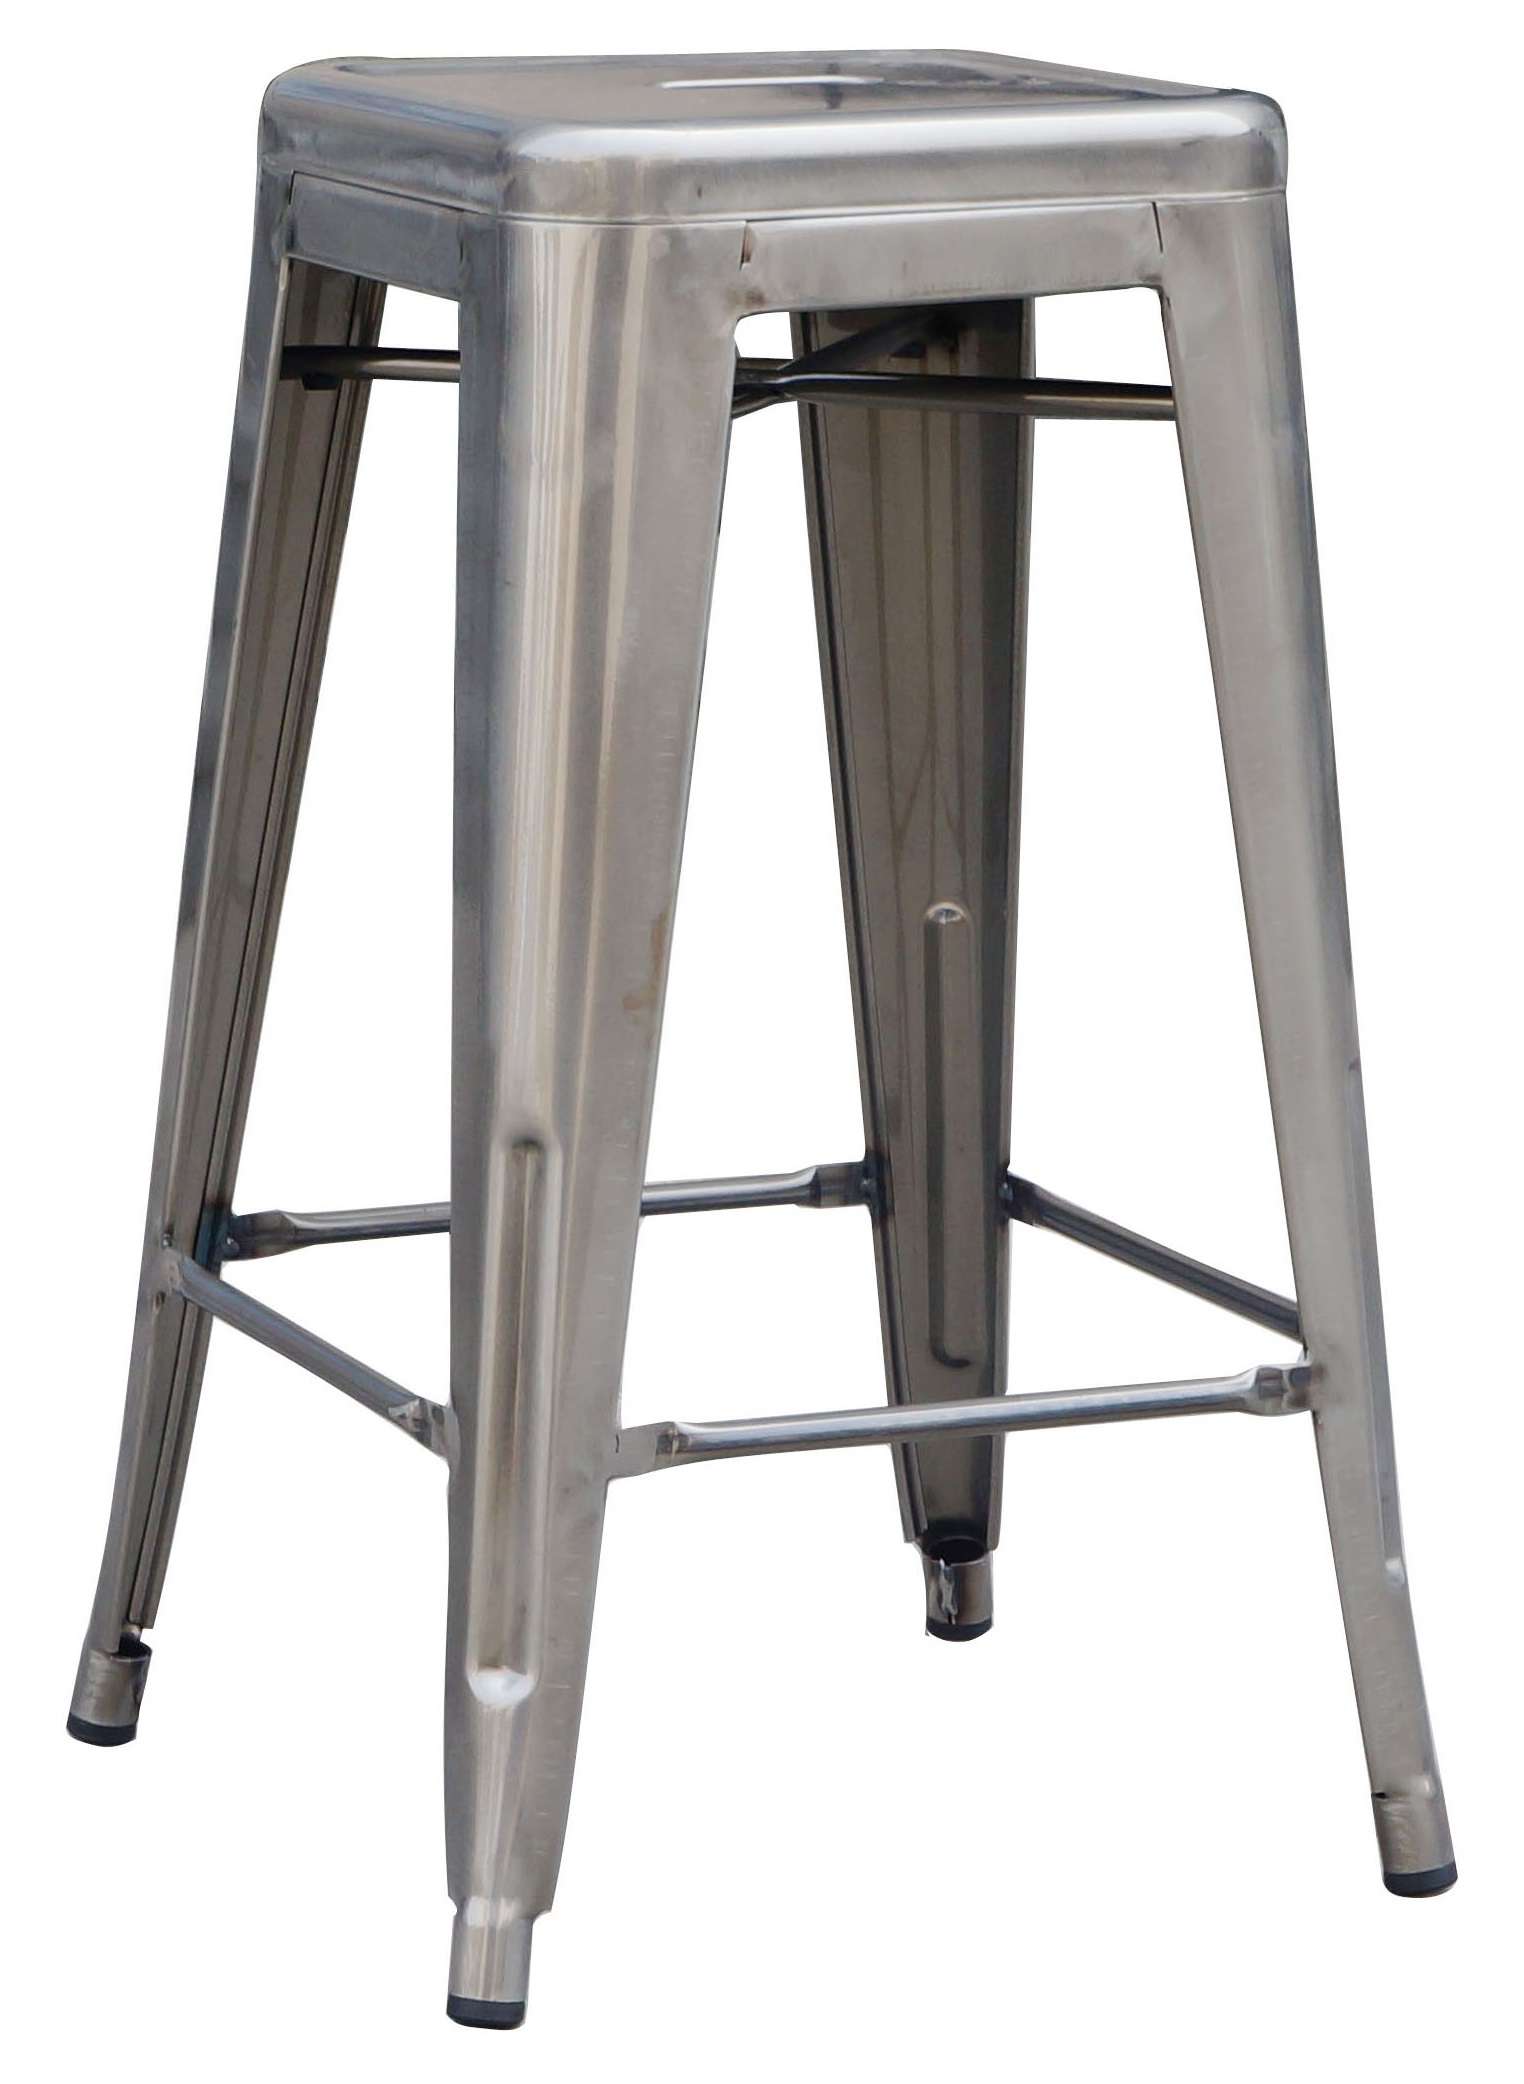 Set of 4x 66cm Tolix Retro Reproduction Cafe Bar Stools - Metal Galvanised  Z2516